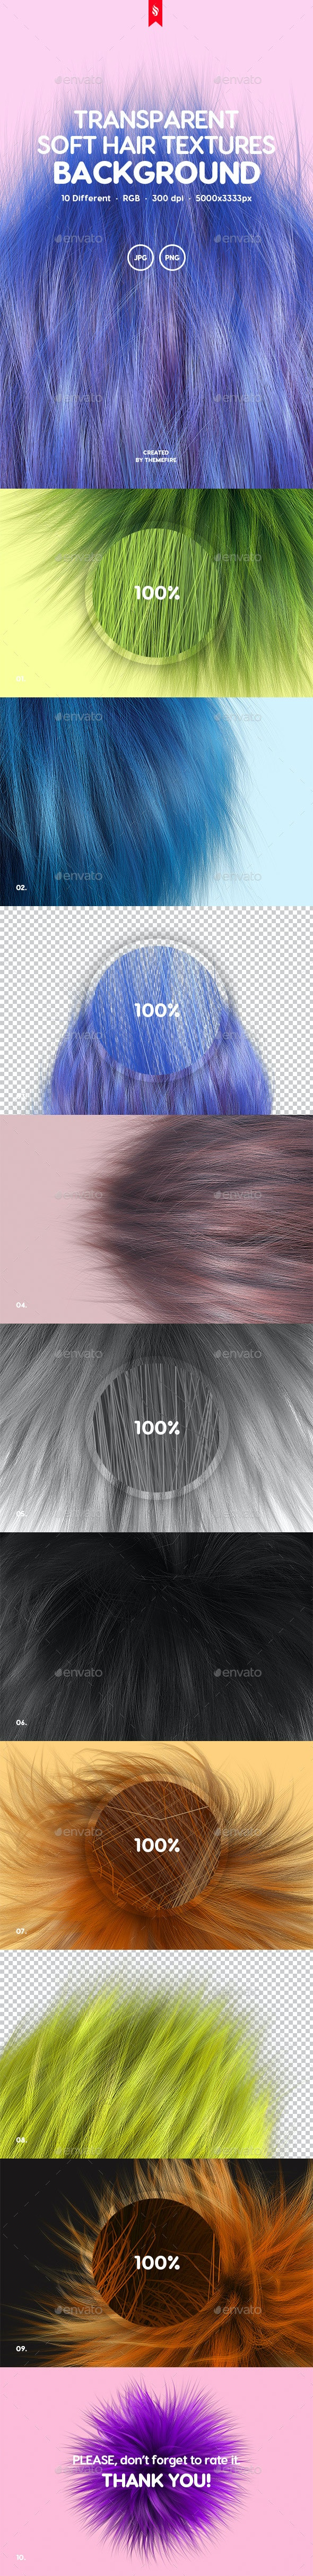 10 Transparent Soft Hair Backgrounds - Backgrounds Graphics